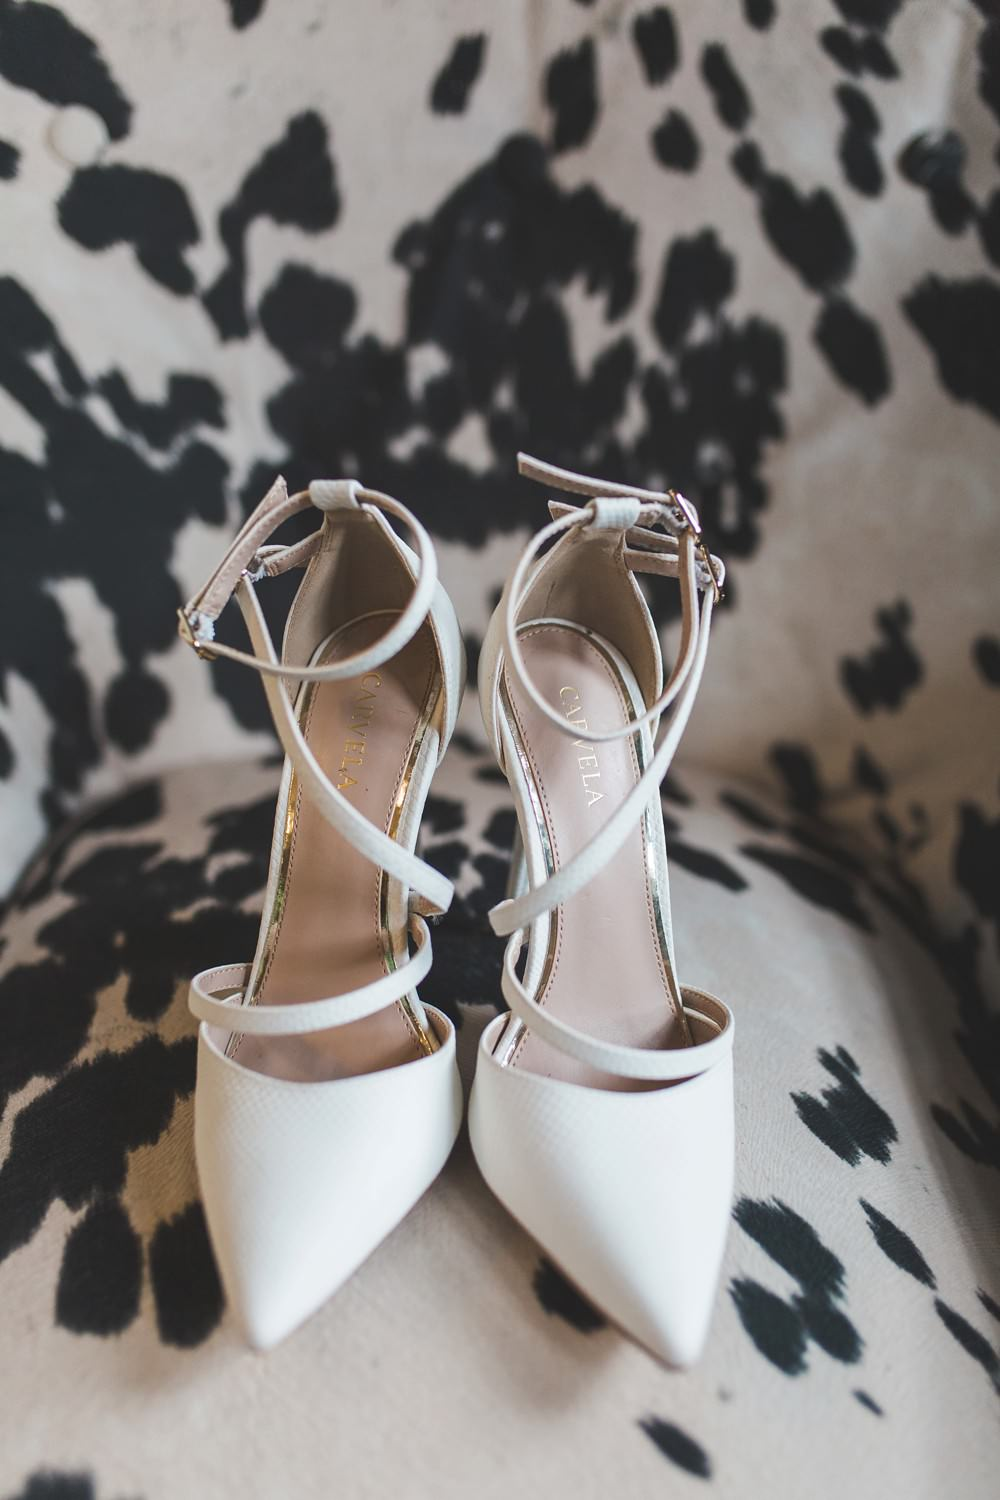 Priory Little Wymondley Wedding Milk Bottle Photography Shoes Bride Bridal